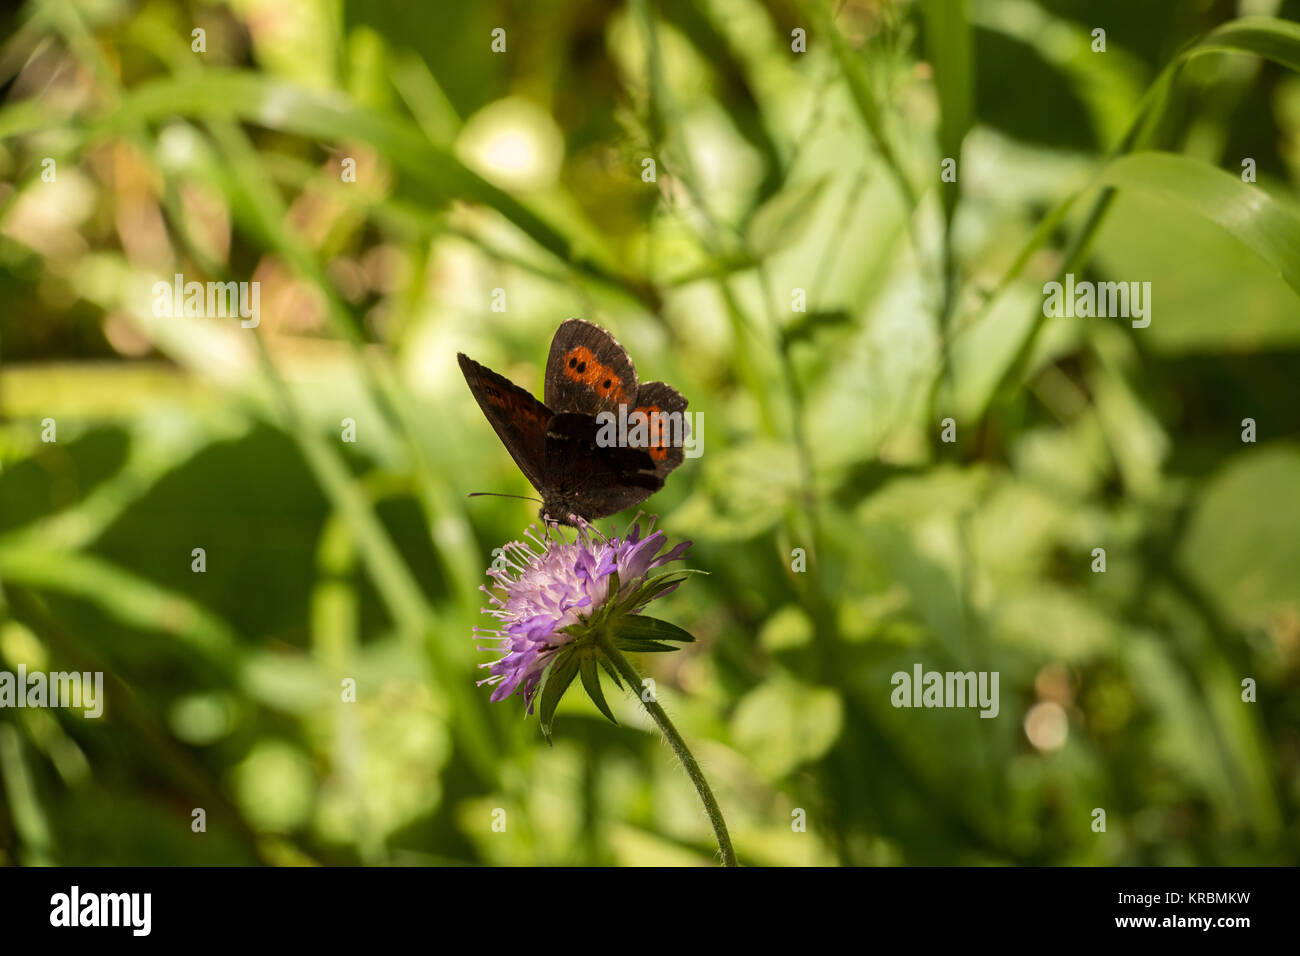 Butterfly on violet flower on the green meadow - Stock Image